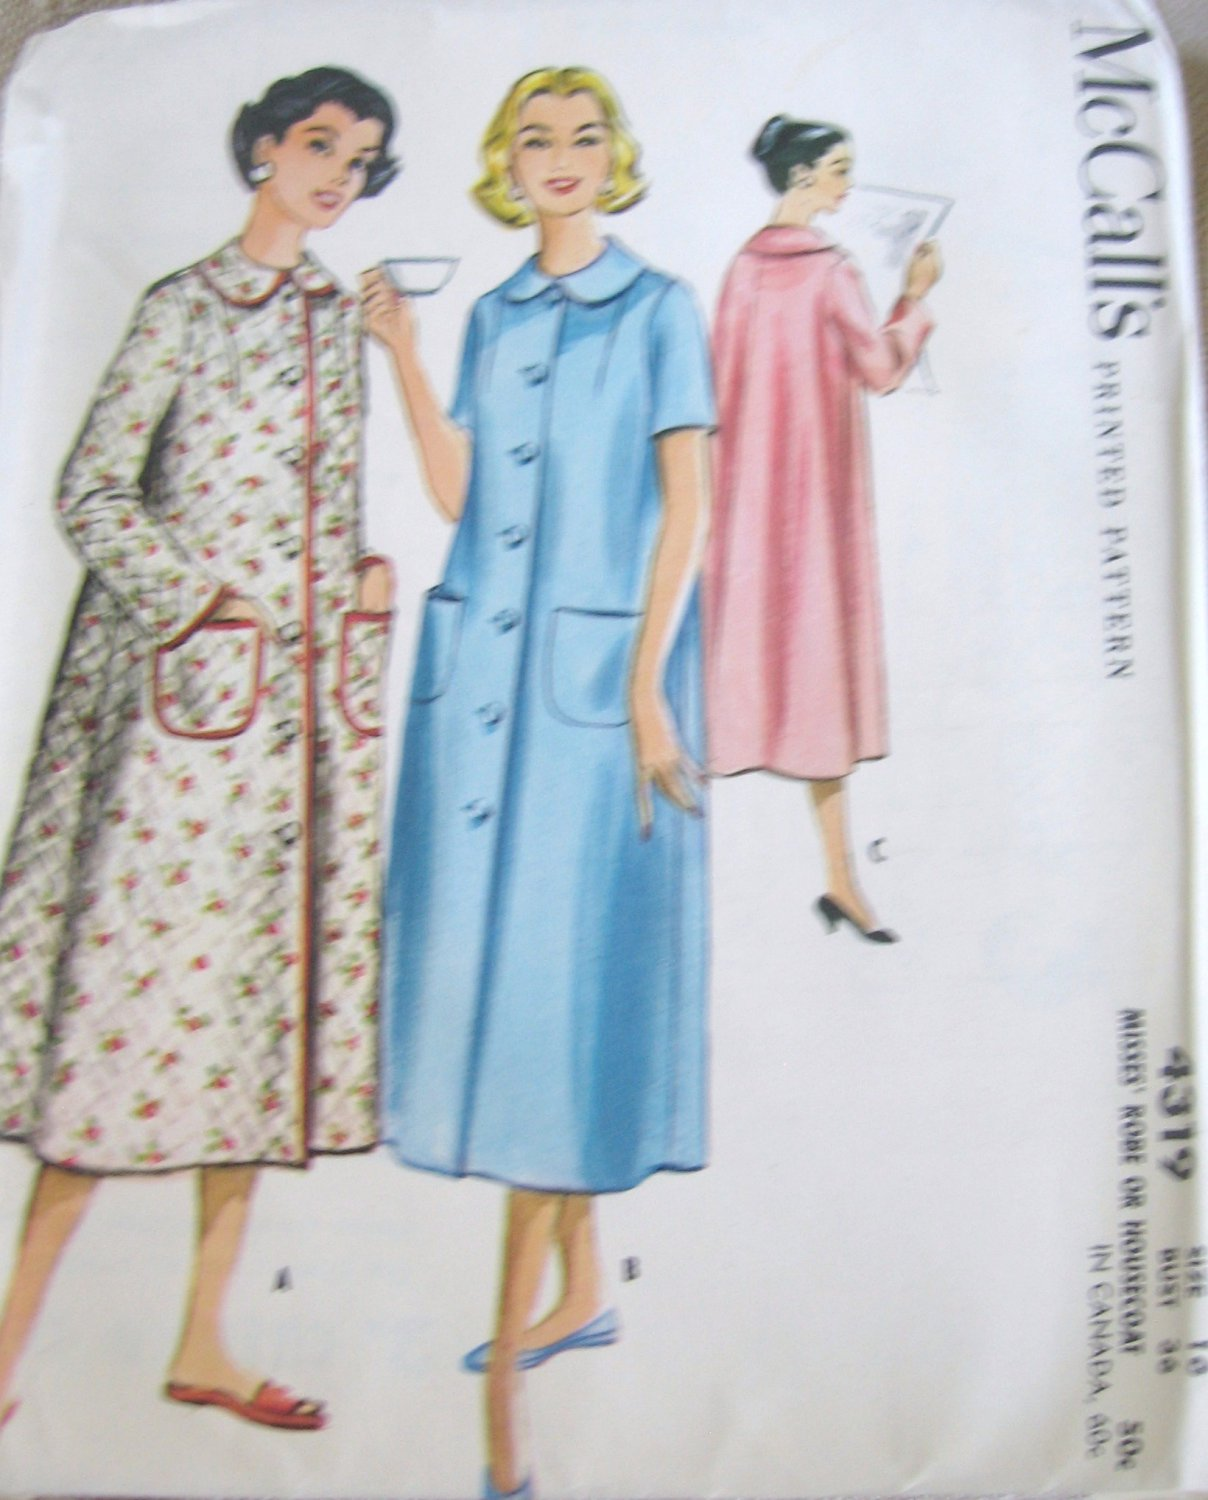 McCall's 4319 Robe Housecoat Sewing Pattern Size 16 Bust 36 uncut